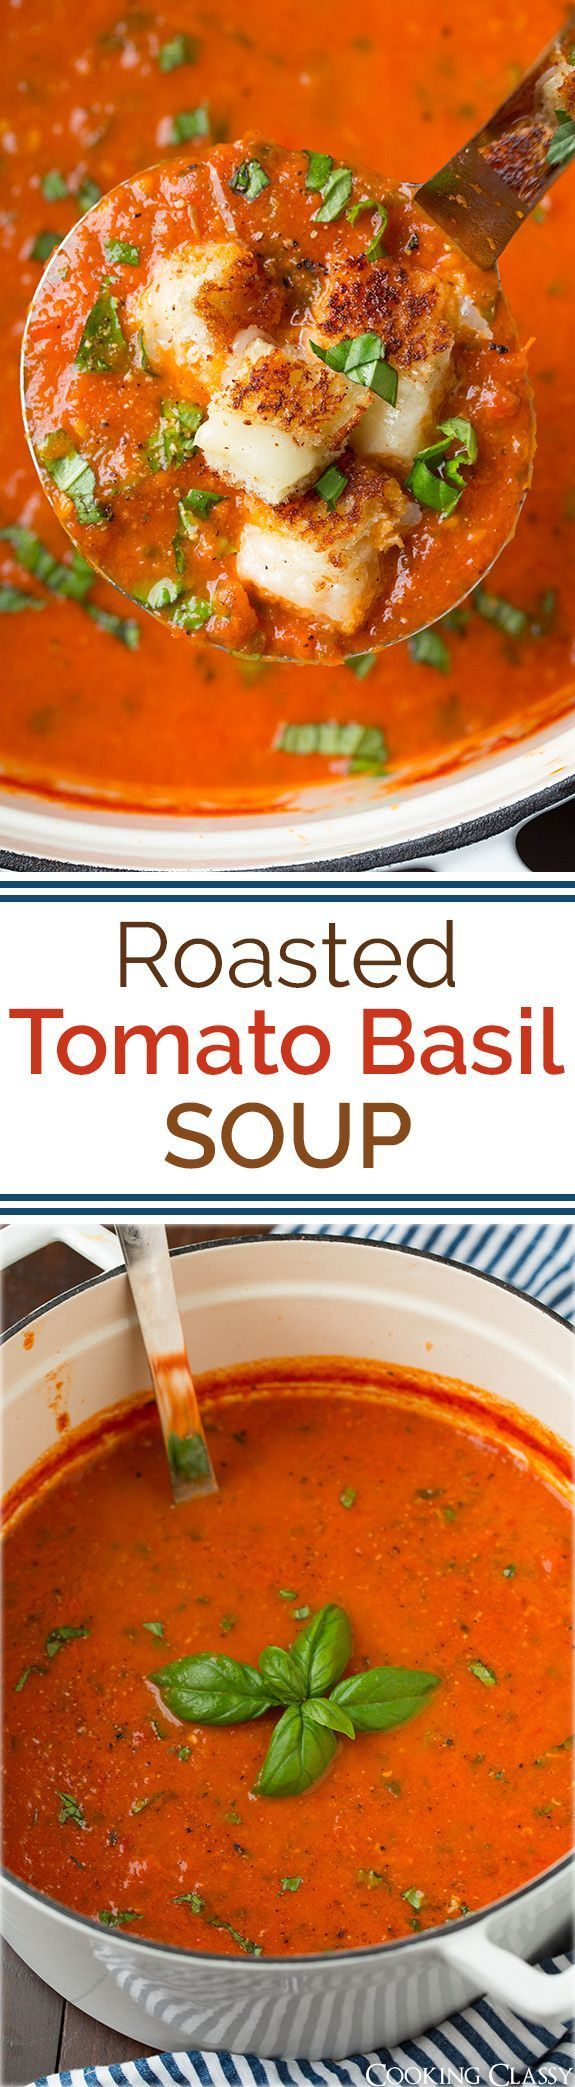 Roasted Tomato Basil Soup (with optional grilled cheese croutons) - this soup is incredibly good! So much fresh flavor and requires minimal ingredients.